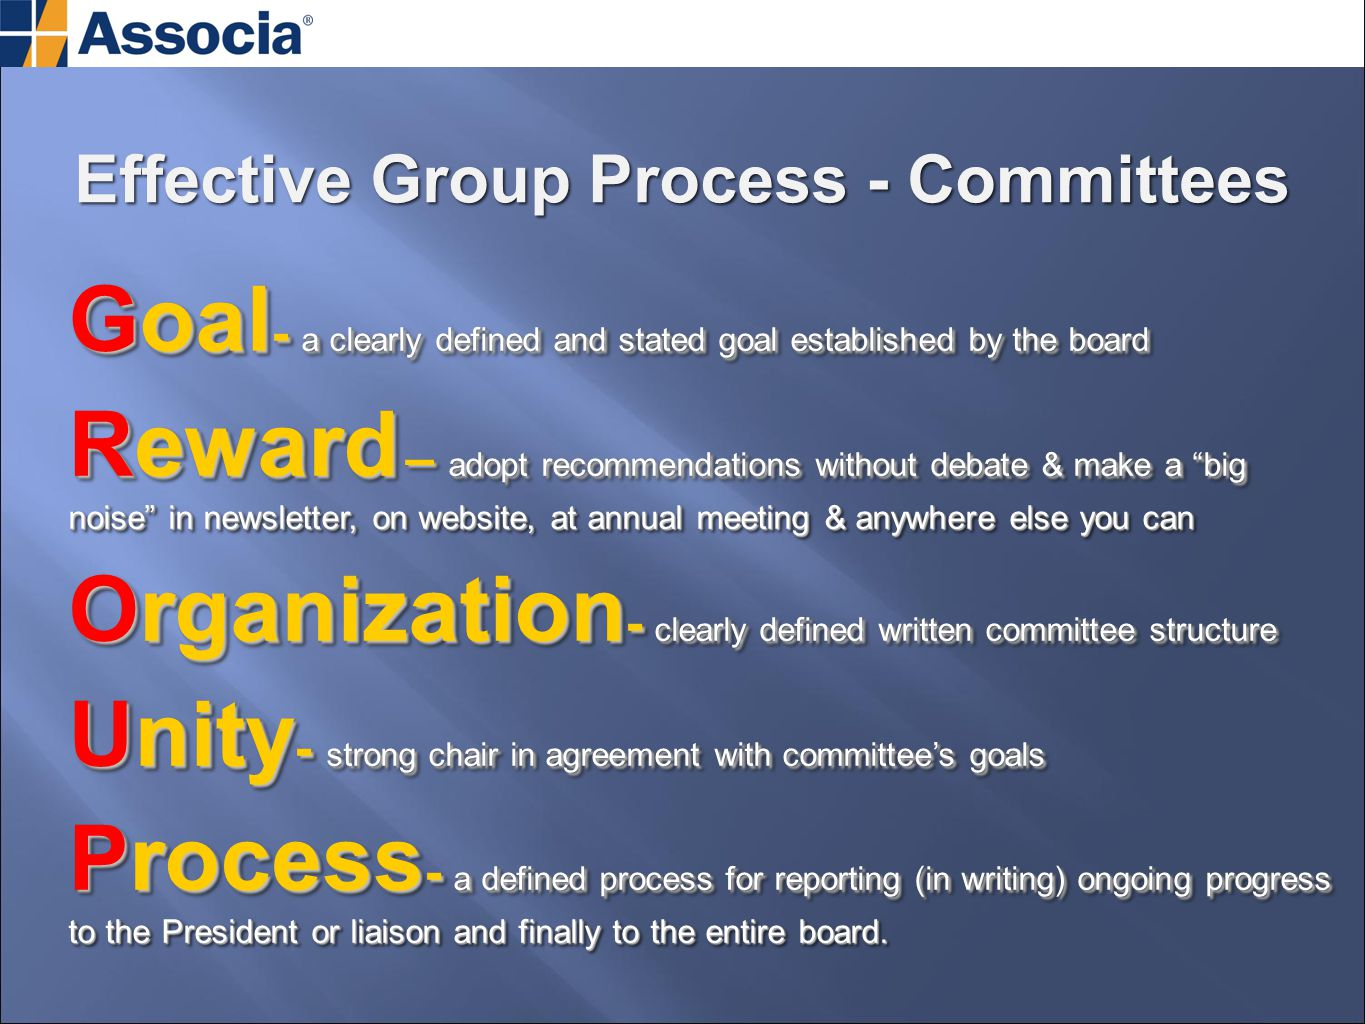 Goal - a clearly defined and stated goal established by the board Reward – adopt recommendations without debate & make a big noise in newsletter, on website, at annual meeting & anywhere else you can Organization - clearly defined written committee structure Unity - strong chair in agreement with committee's goals Process - a defined process for reporting (in writing) ongoing progress to the President or liaison and finally to the entire board.